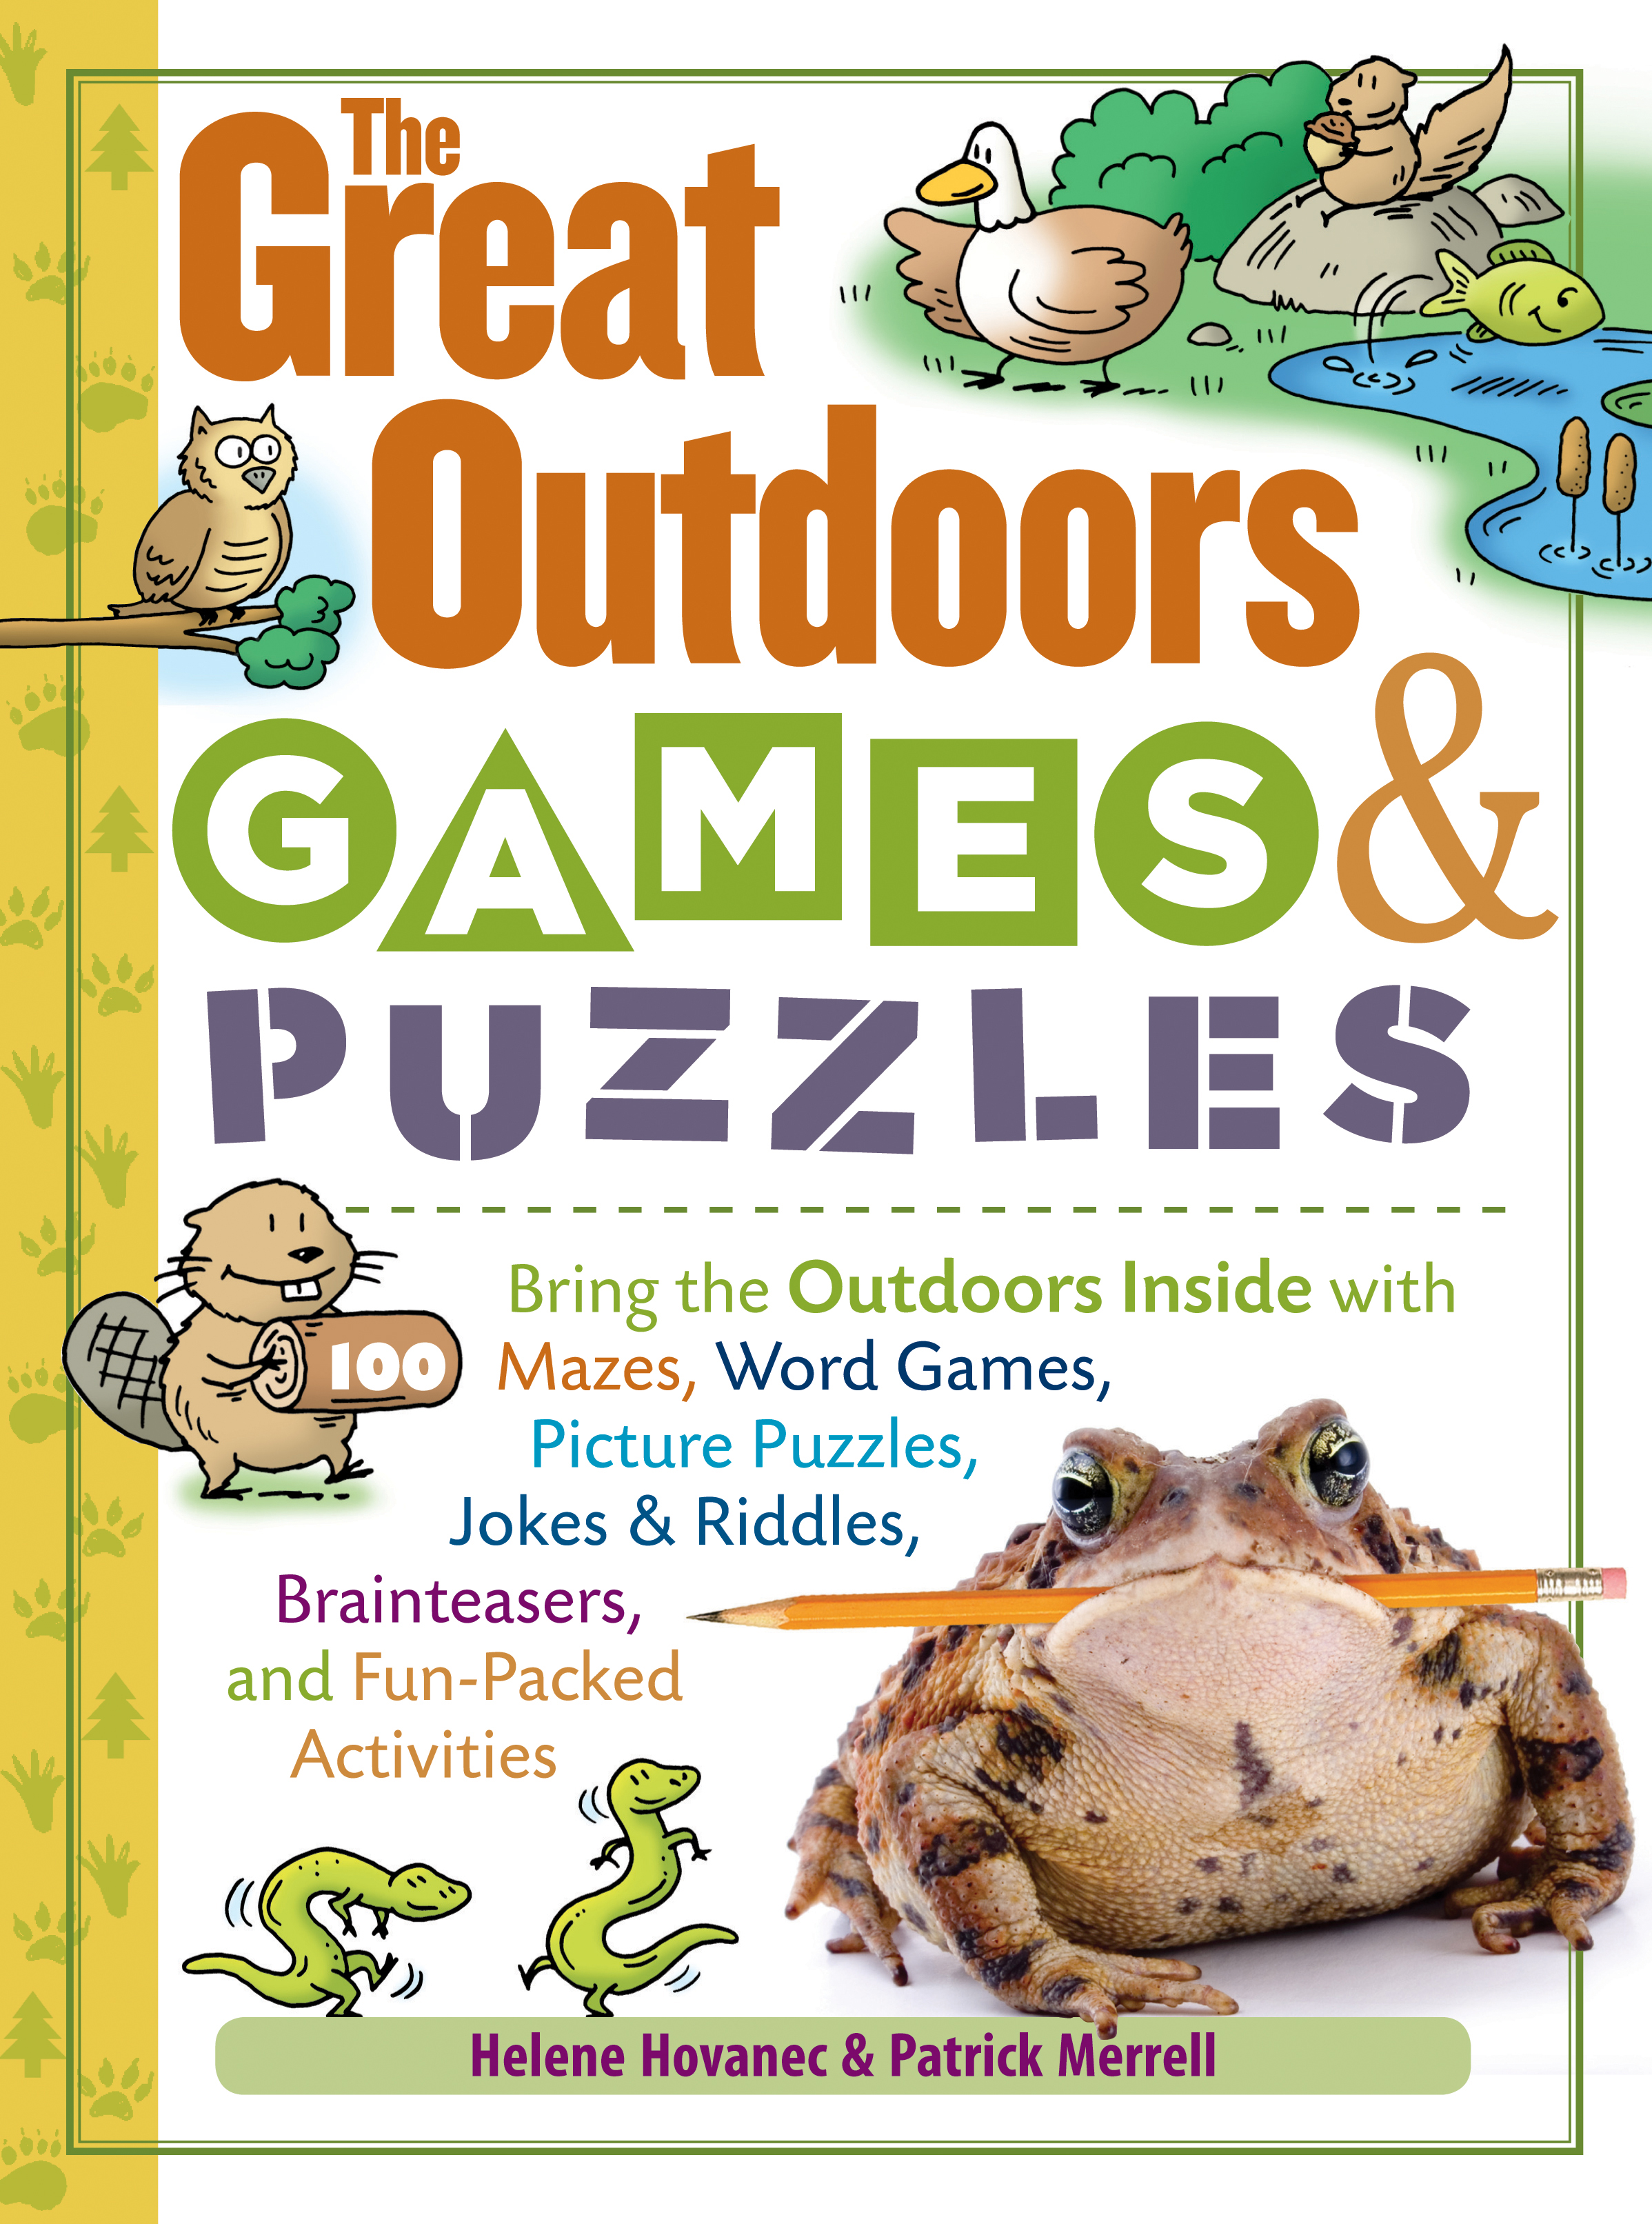 The Great Outdoors Games & Puzzles  - Helene Hovanec